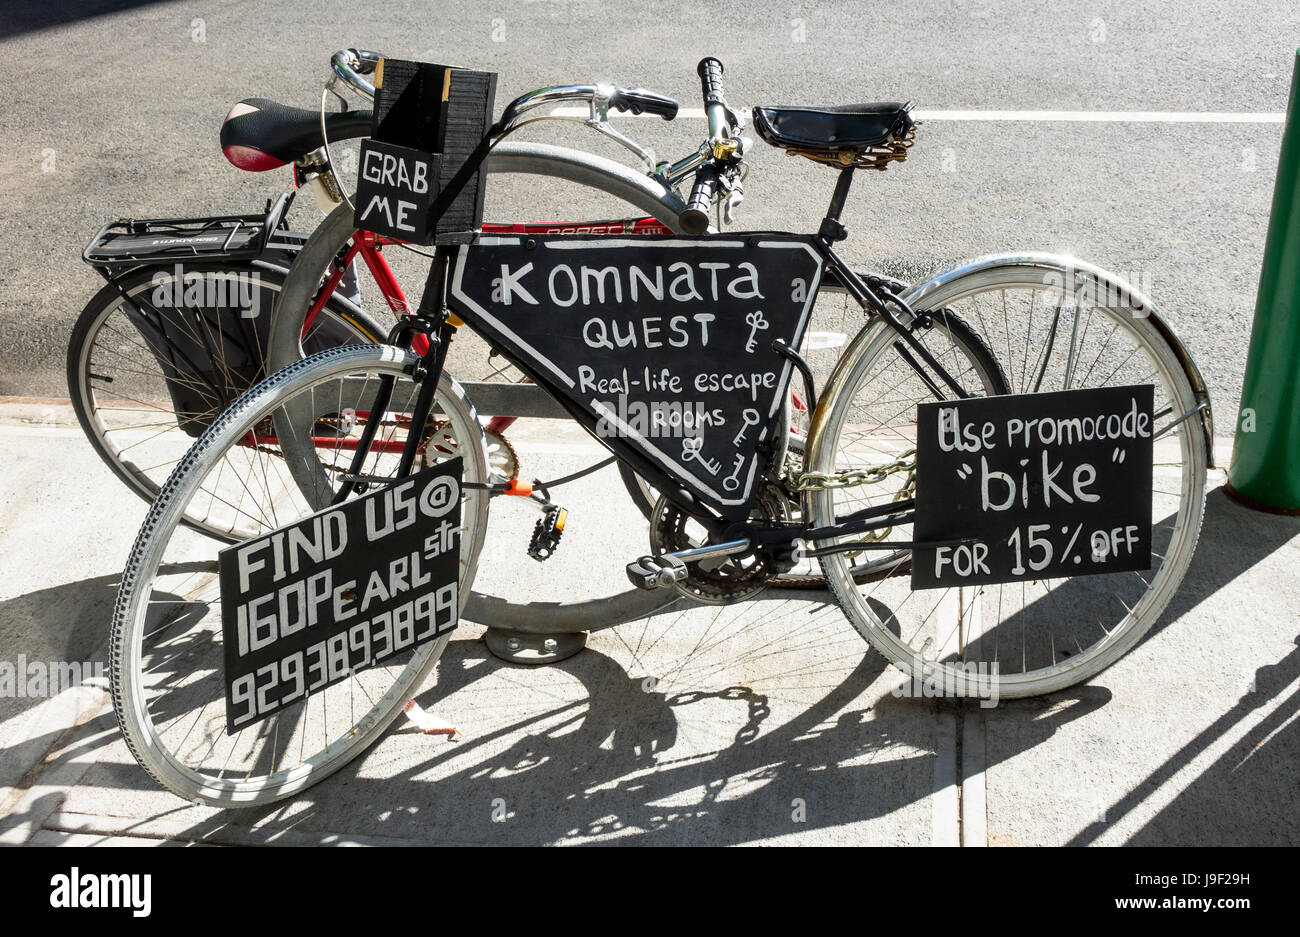 A bicycle with several ads attached - Stock Image